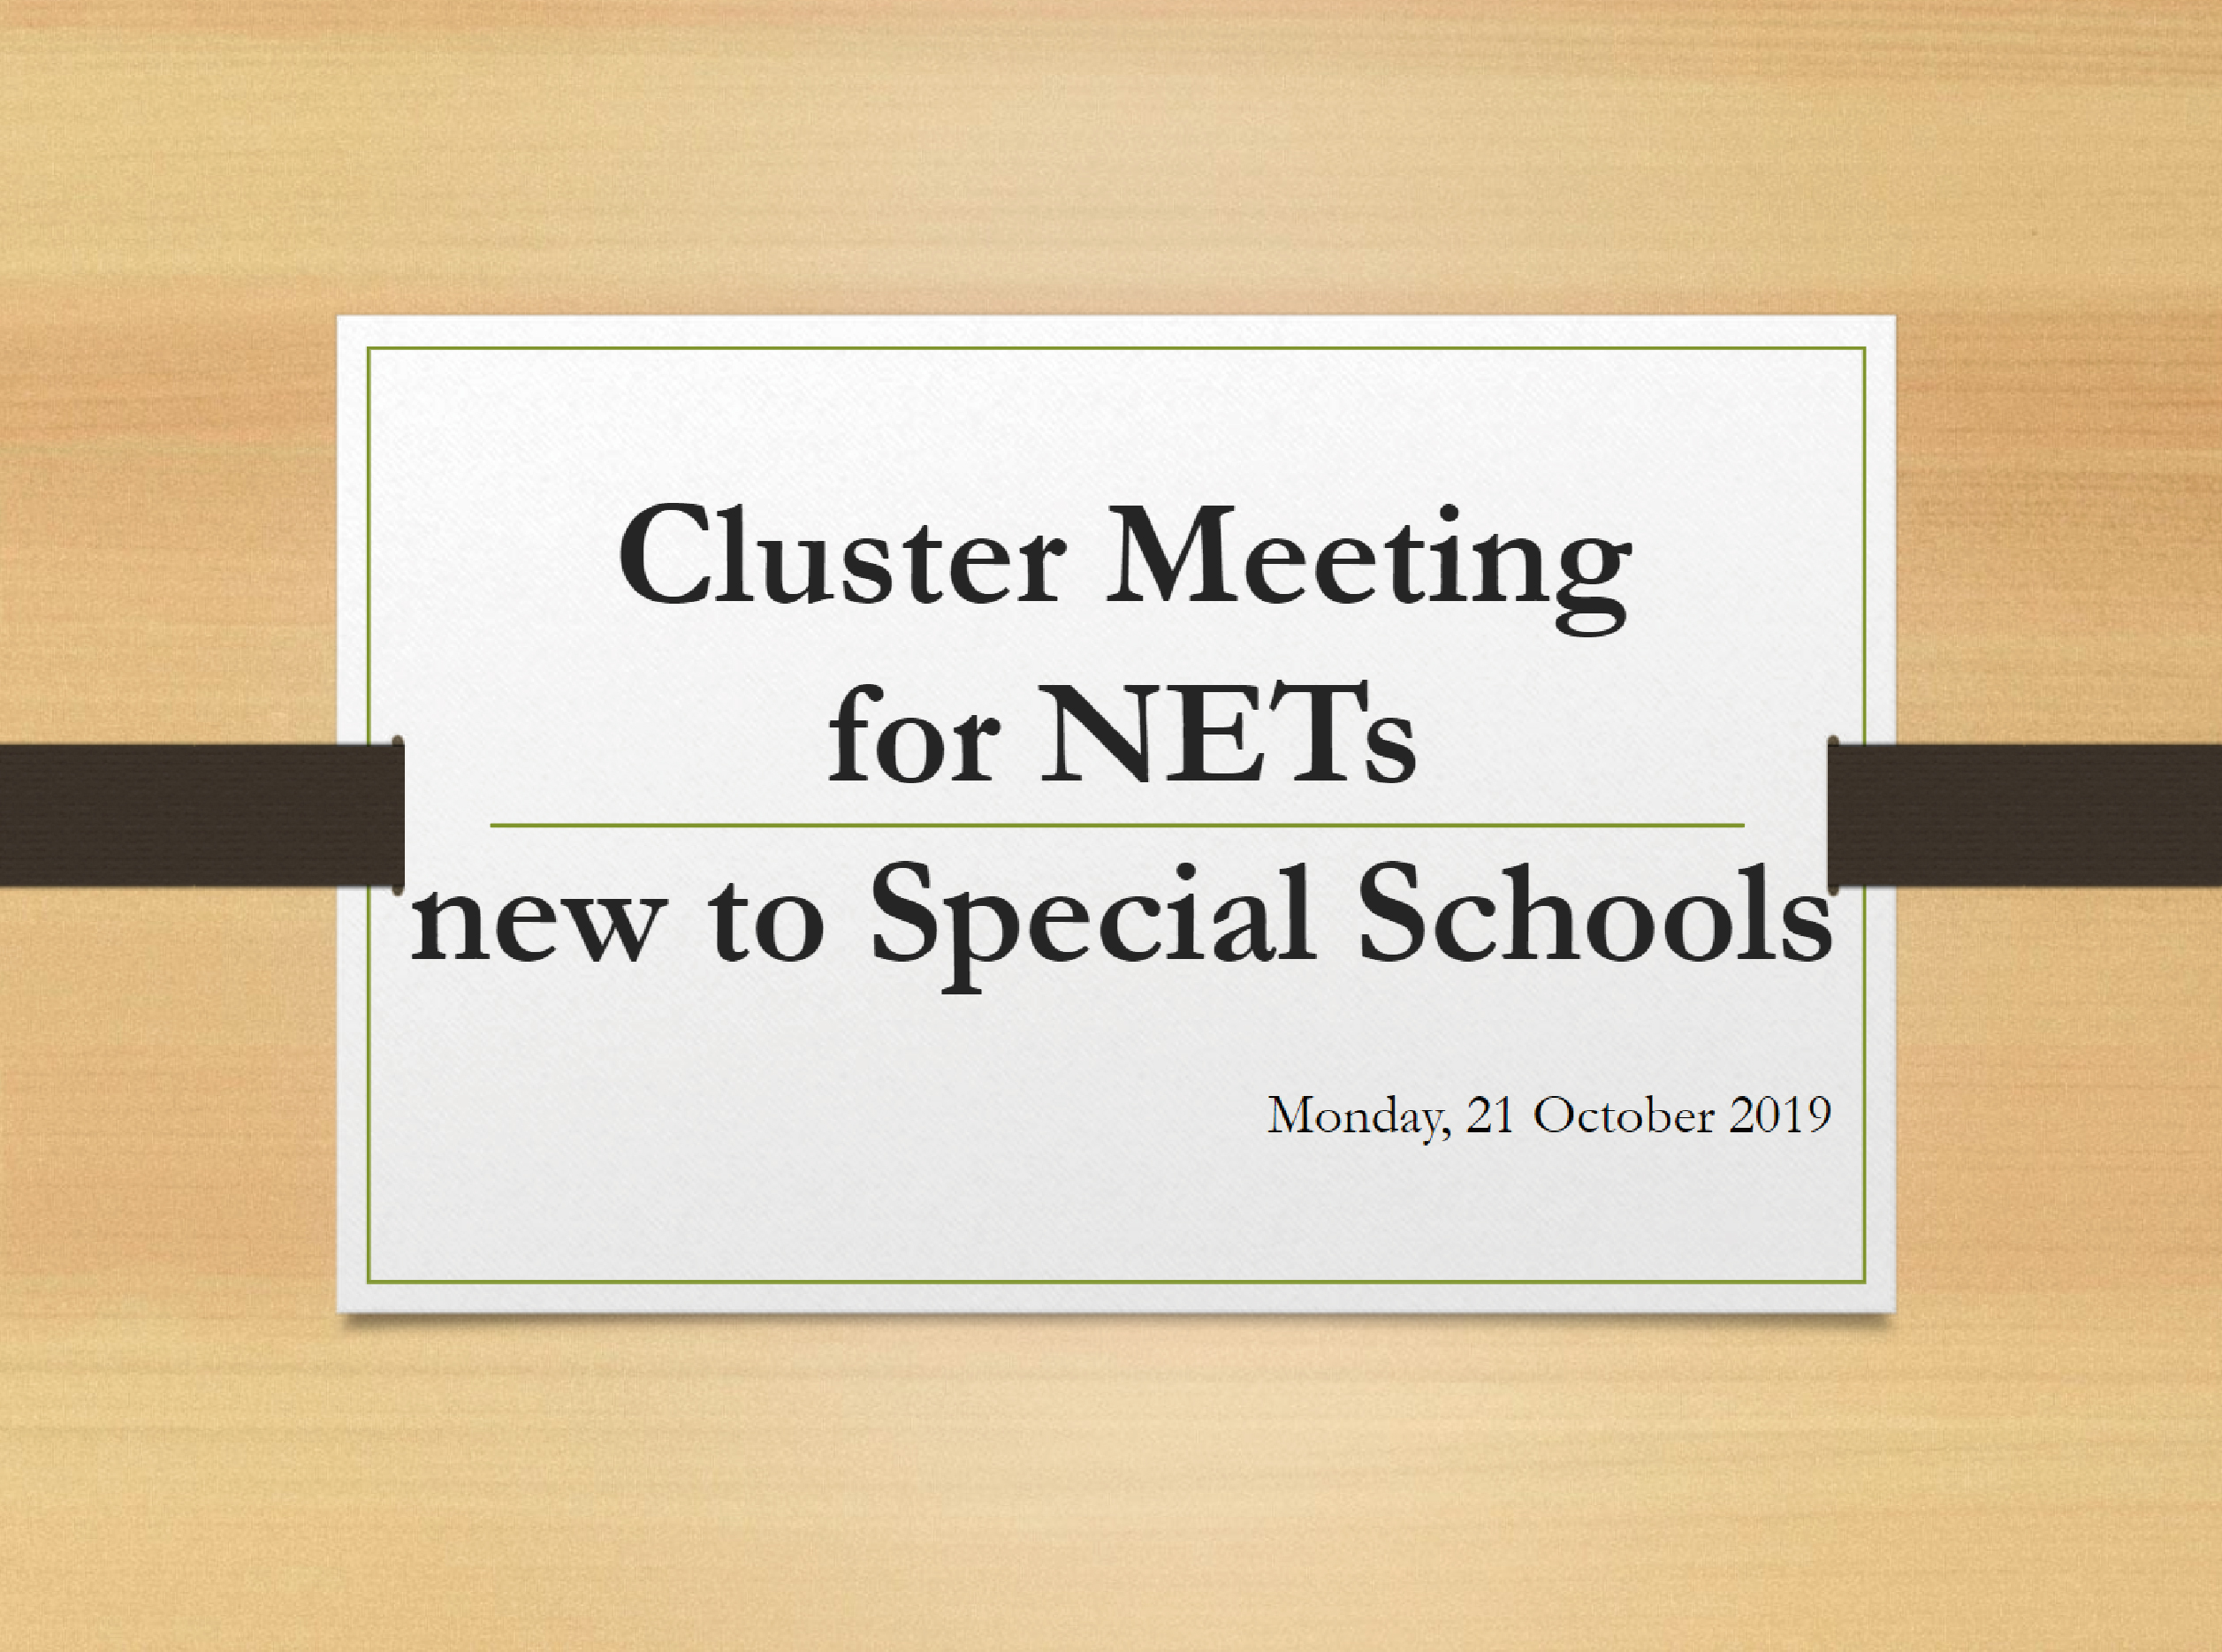 Cluster Meeting for NETs new to Special Schools